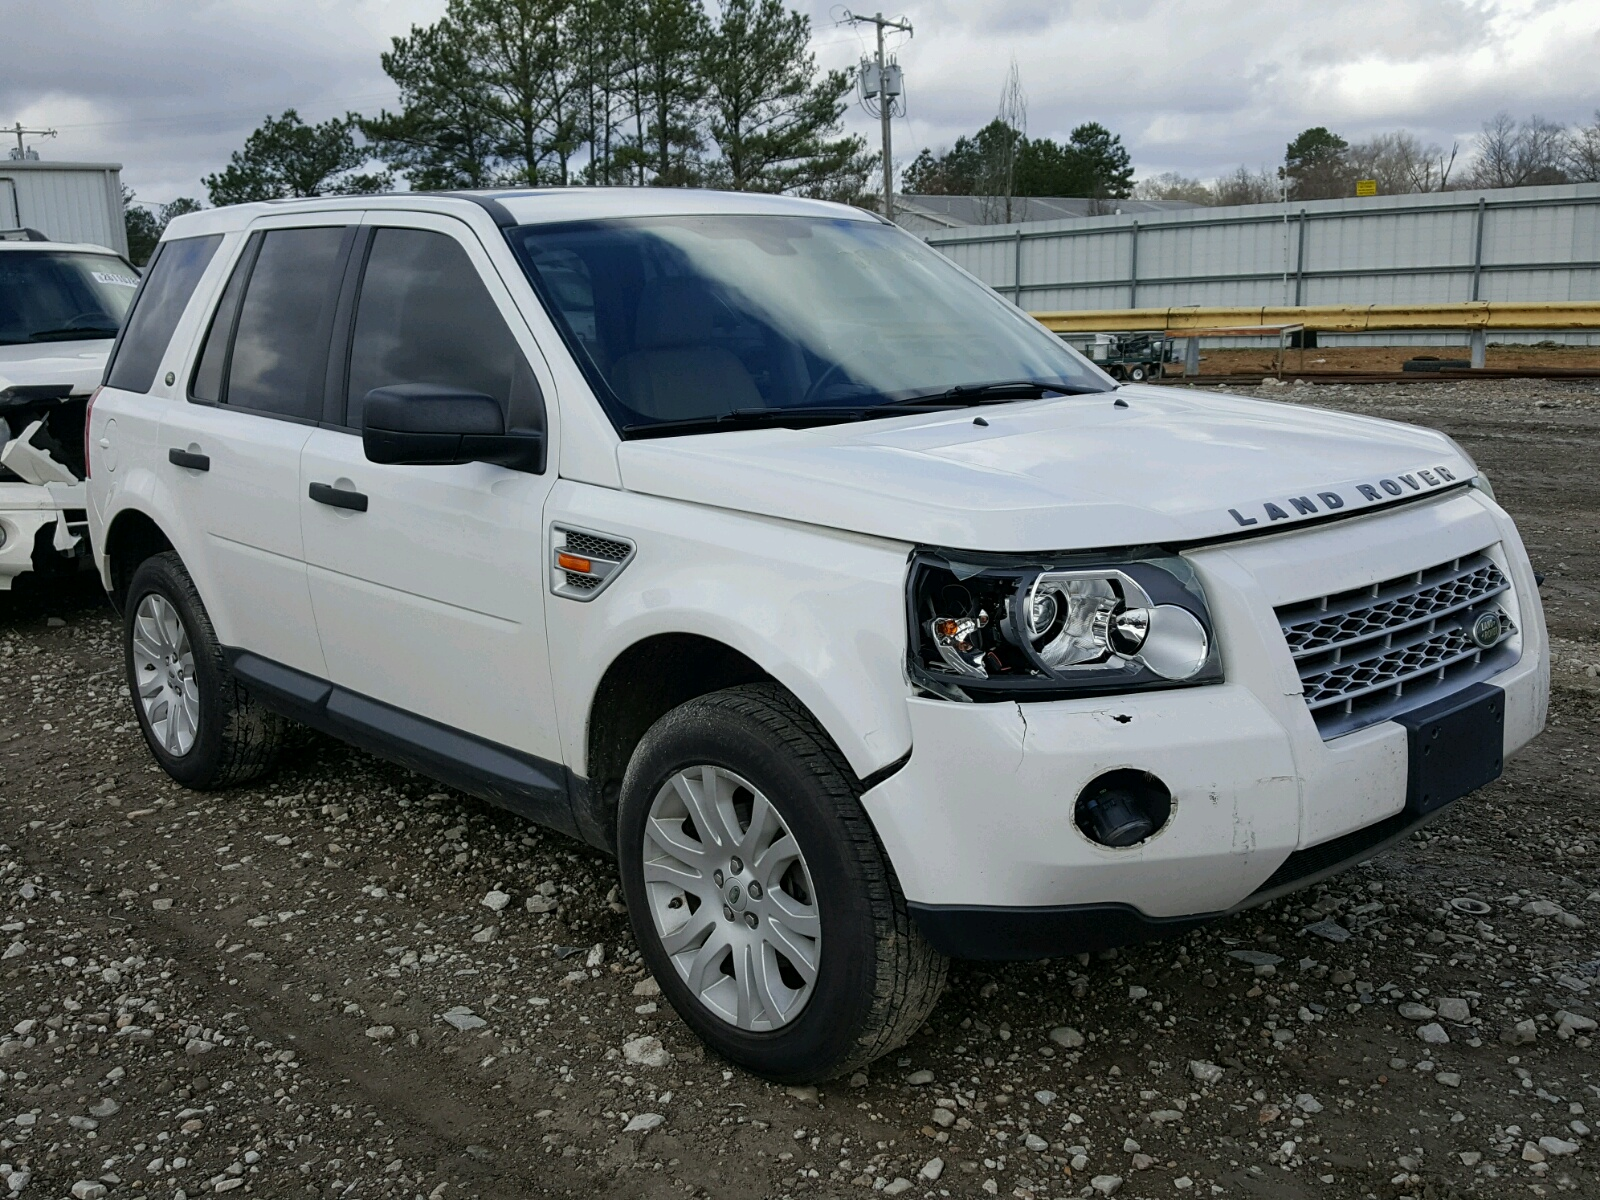 cert of left sale carfinder landrover view salvage online for silver in nh webster en auctions copart on land auto se lot title rover